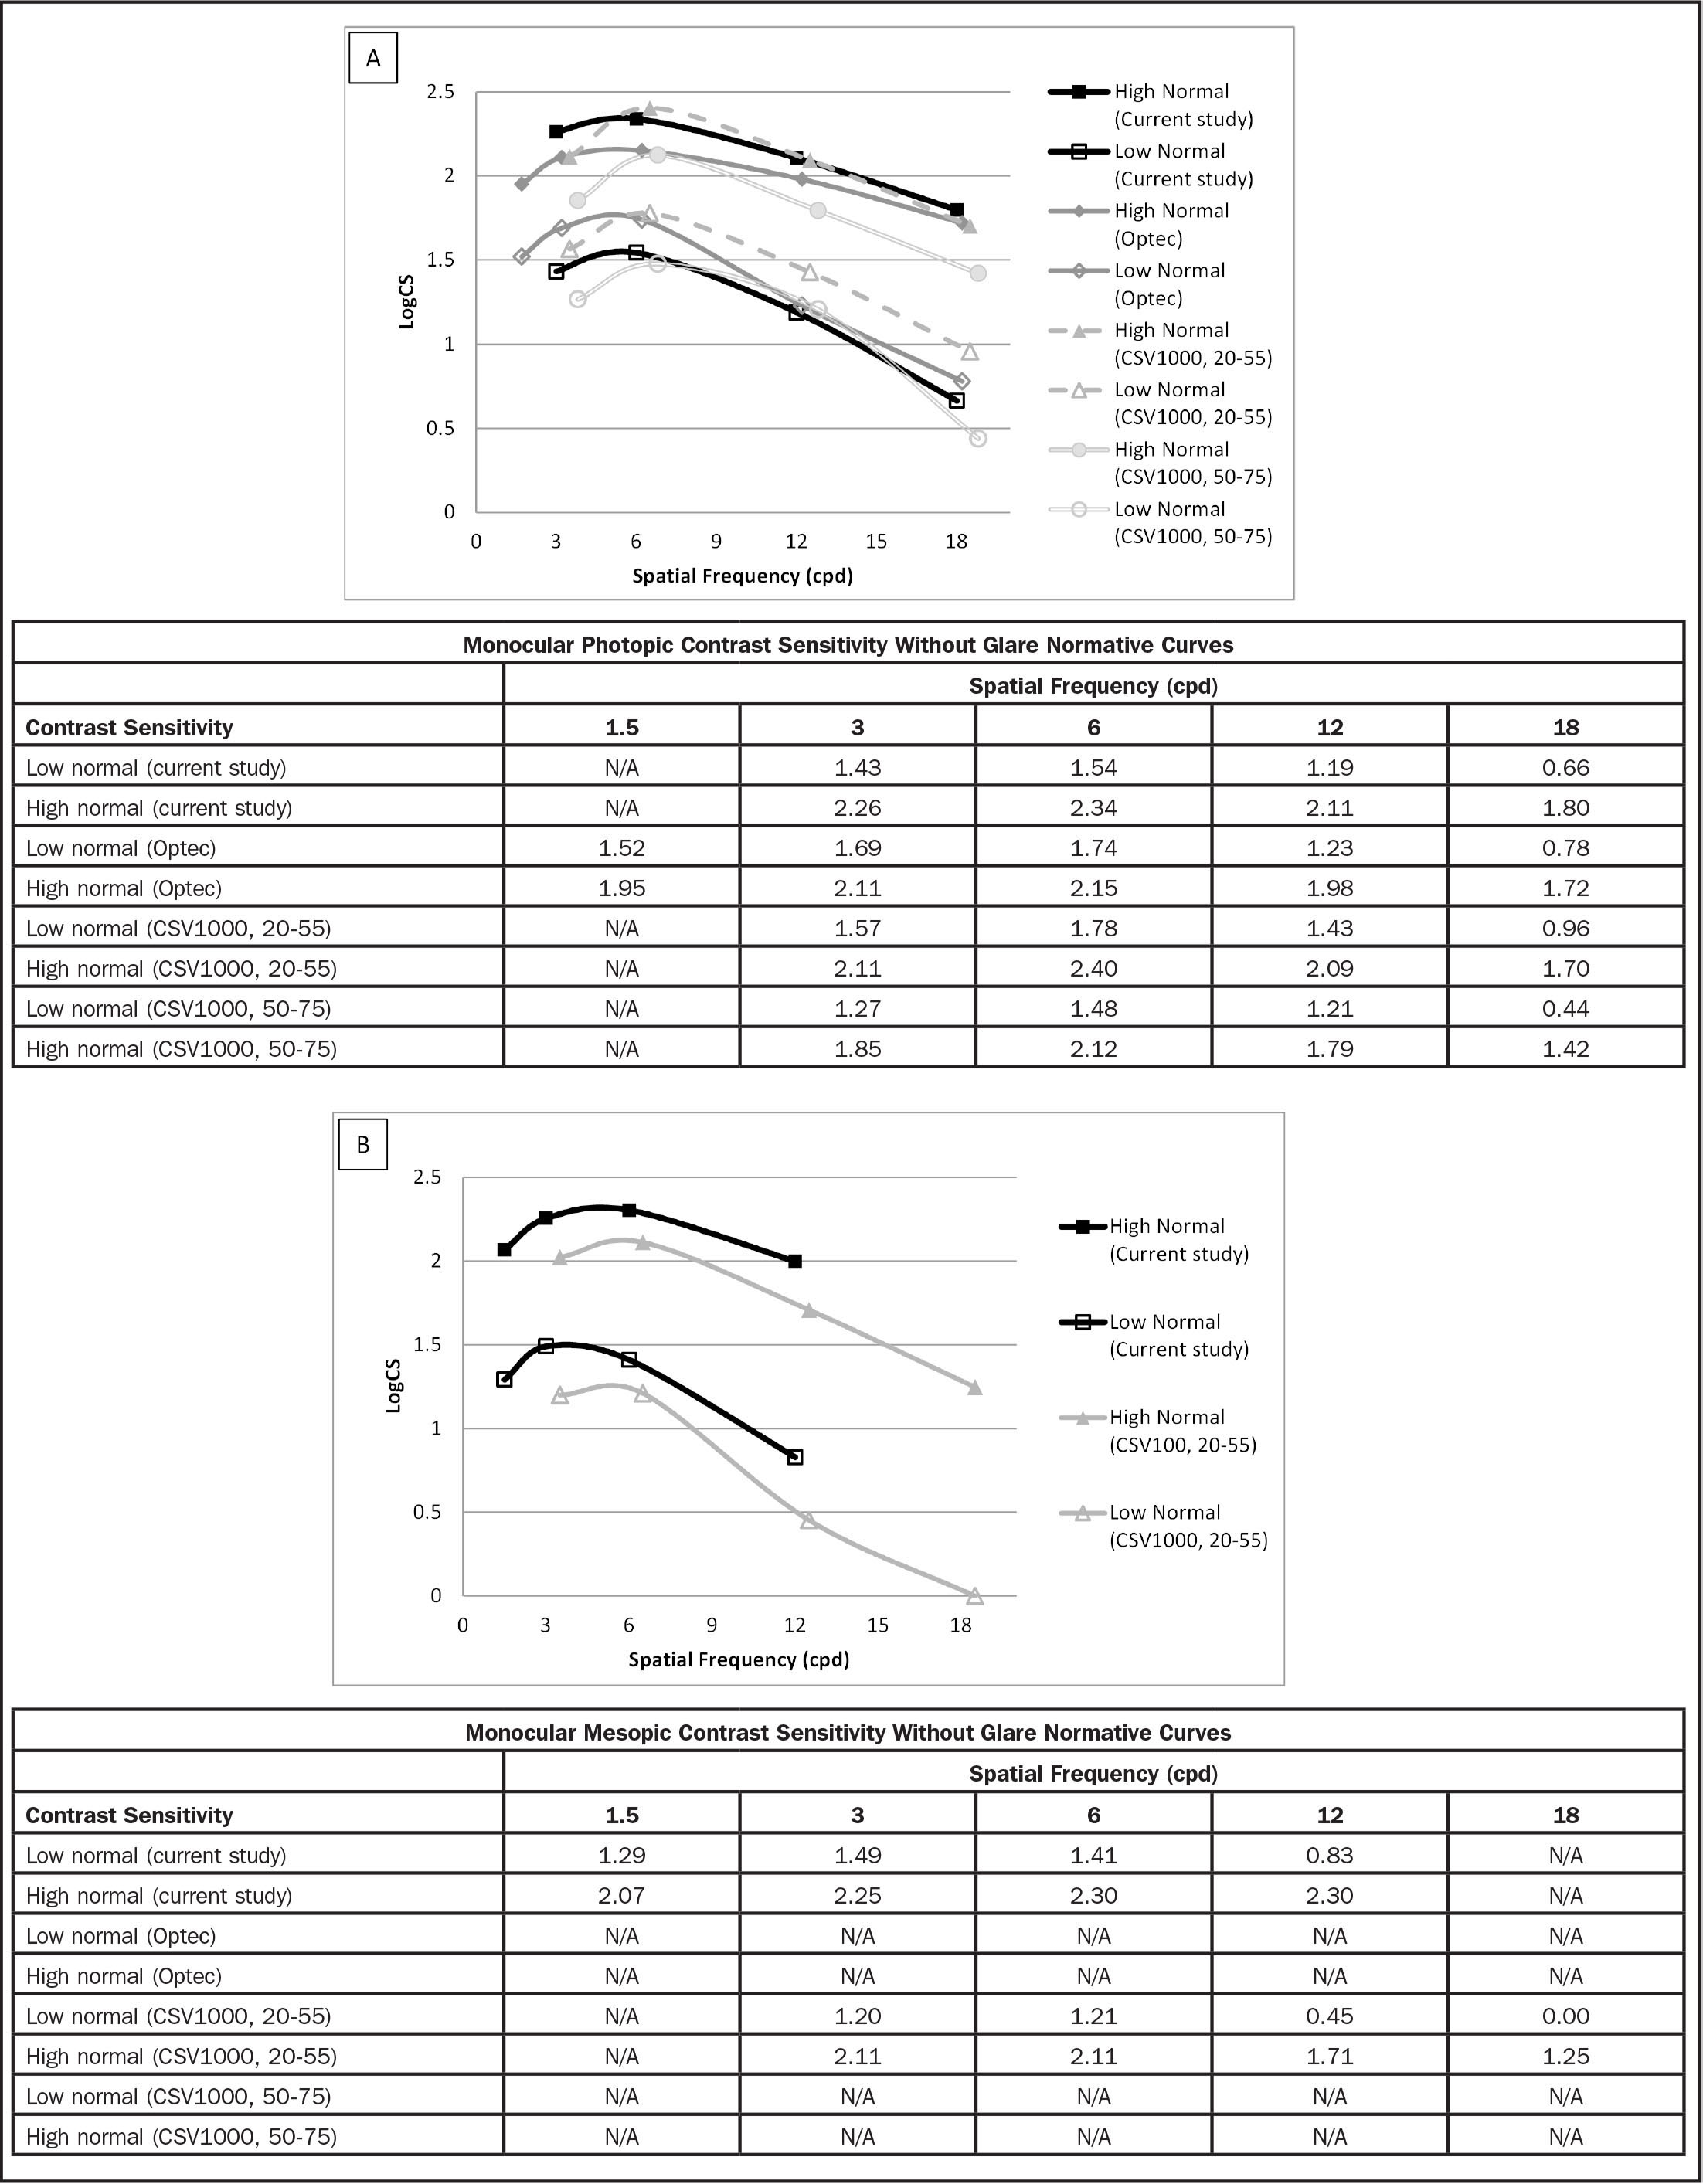 Normative log10 unit of contrast sensitivity (logCS) curves from the current study and related sources for monocular (A) photopic and (B) mesopic without glare condition. Curves were slightly offset for ease of comparison. cpd = cycles per degree; N/A = not available